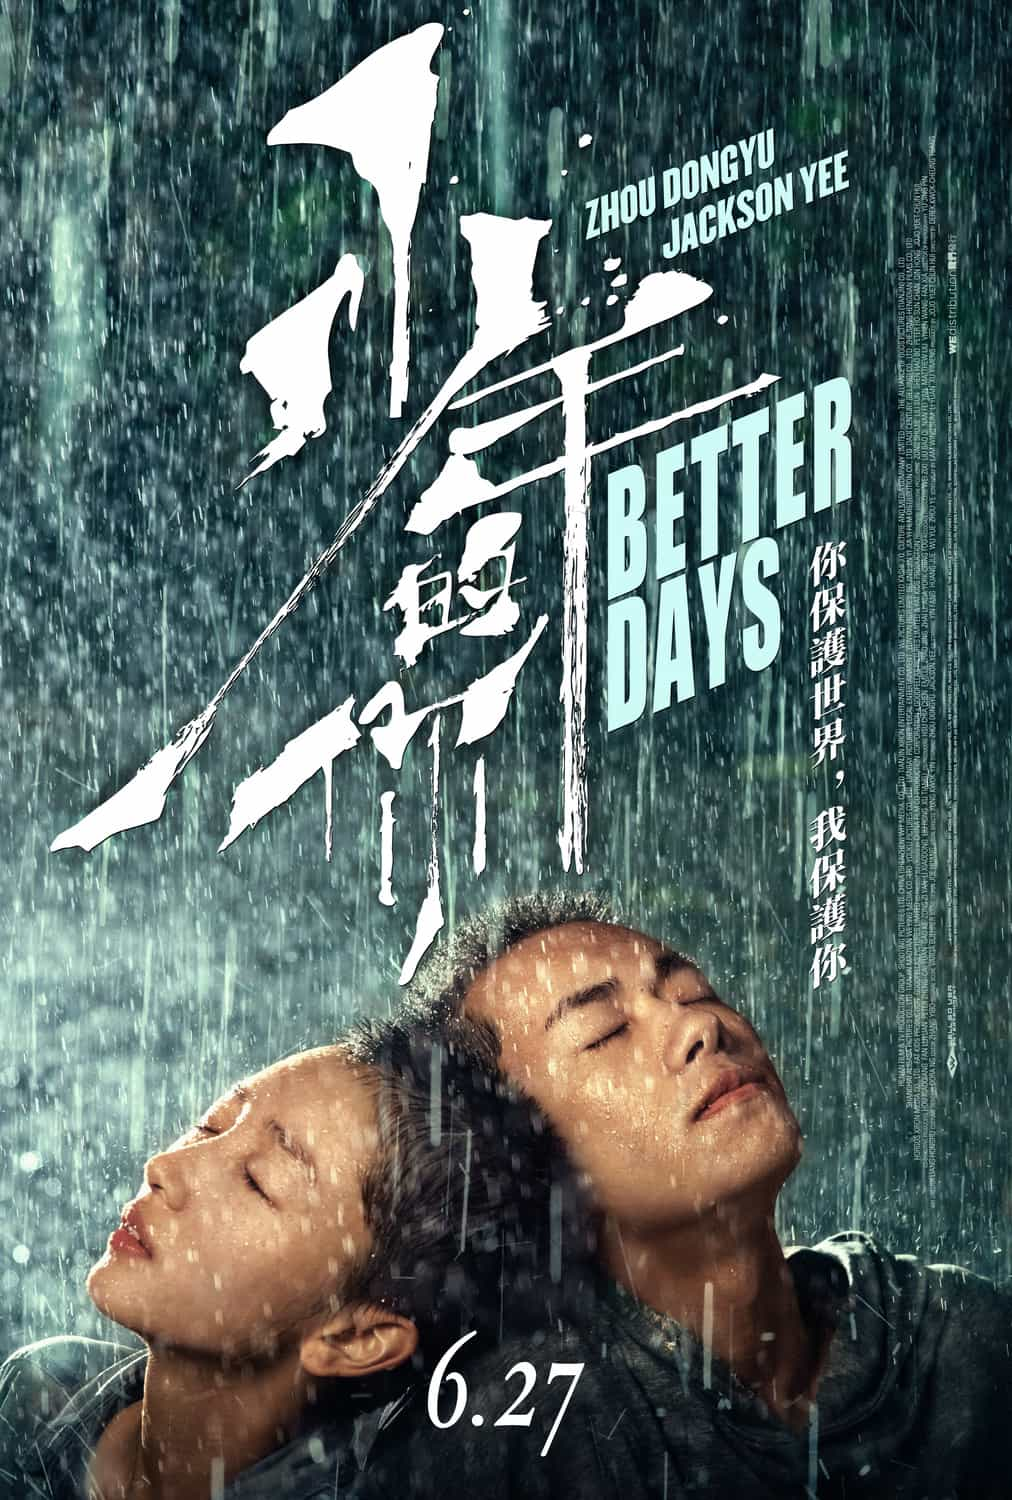 World Box Office Analysis 25th - 27th October 2019:  Chinese film Better Days tops the chart as the only new film this weekend with Maleficent falling to number two